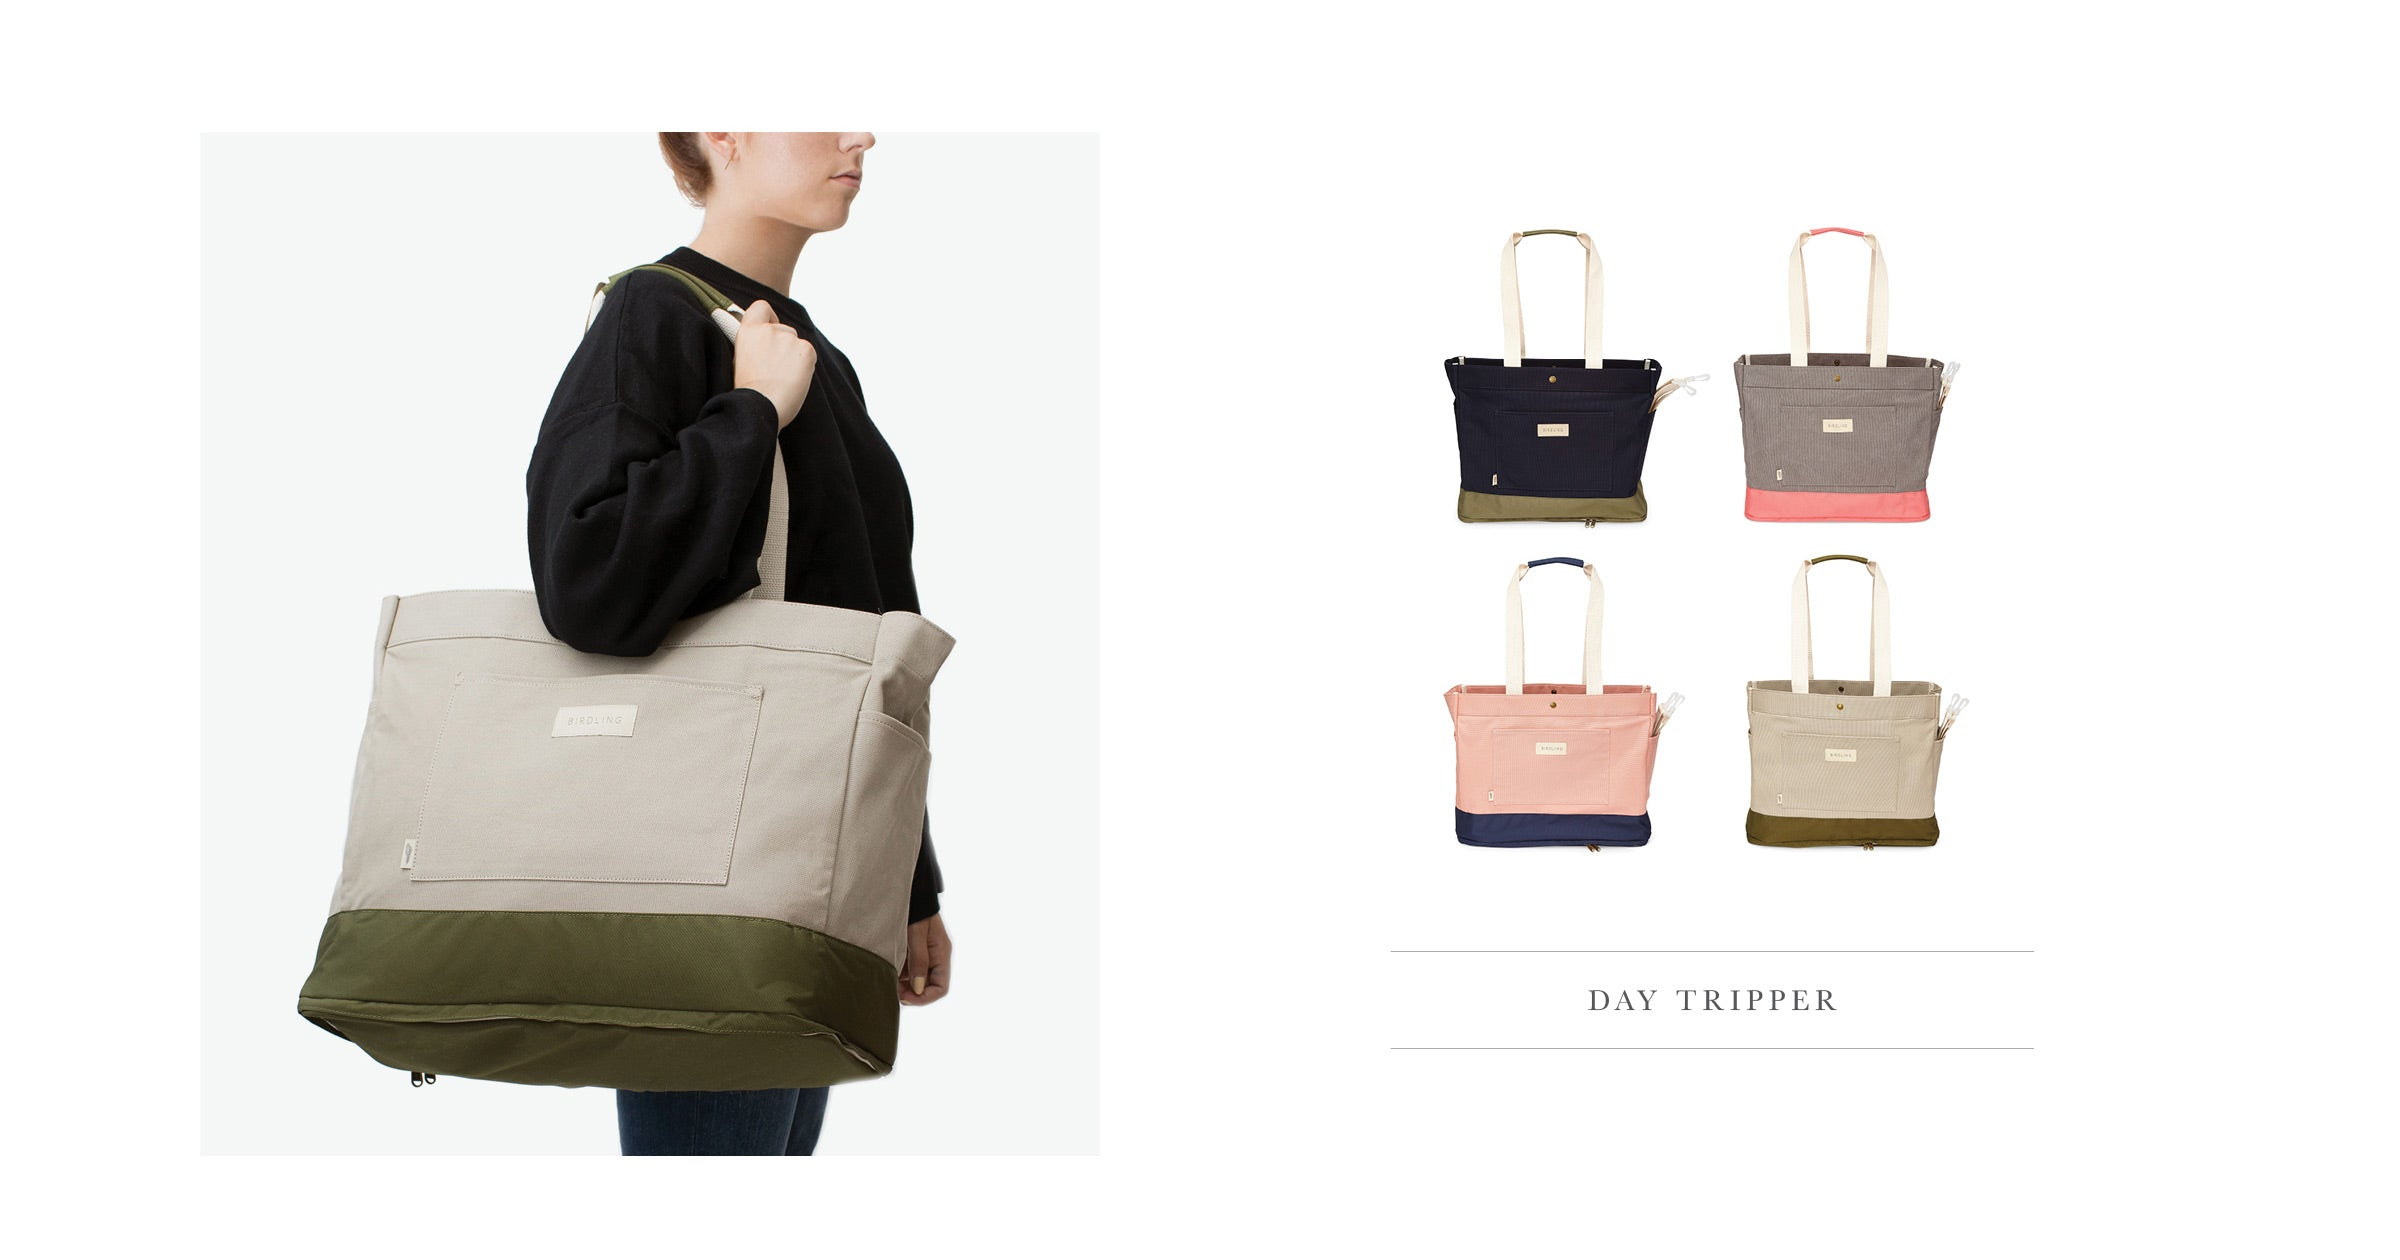 Birdling Day Tripper bag